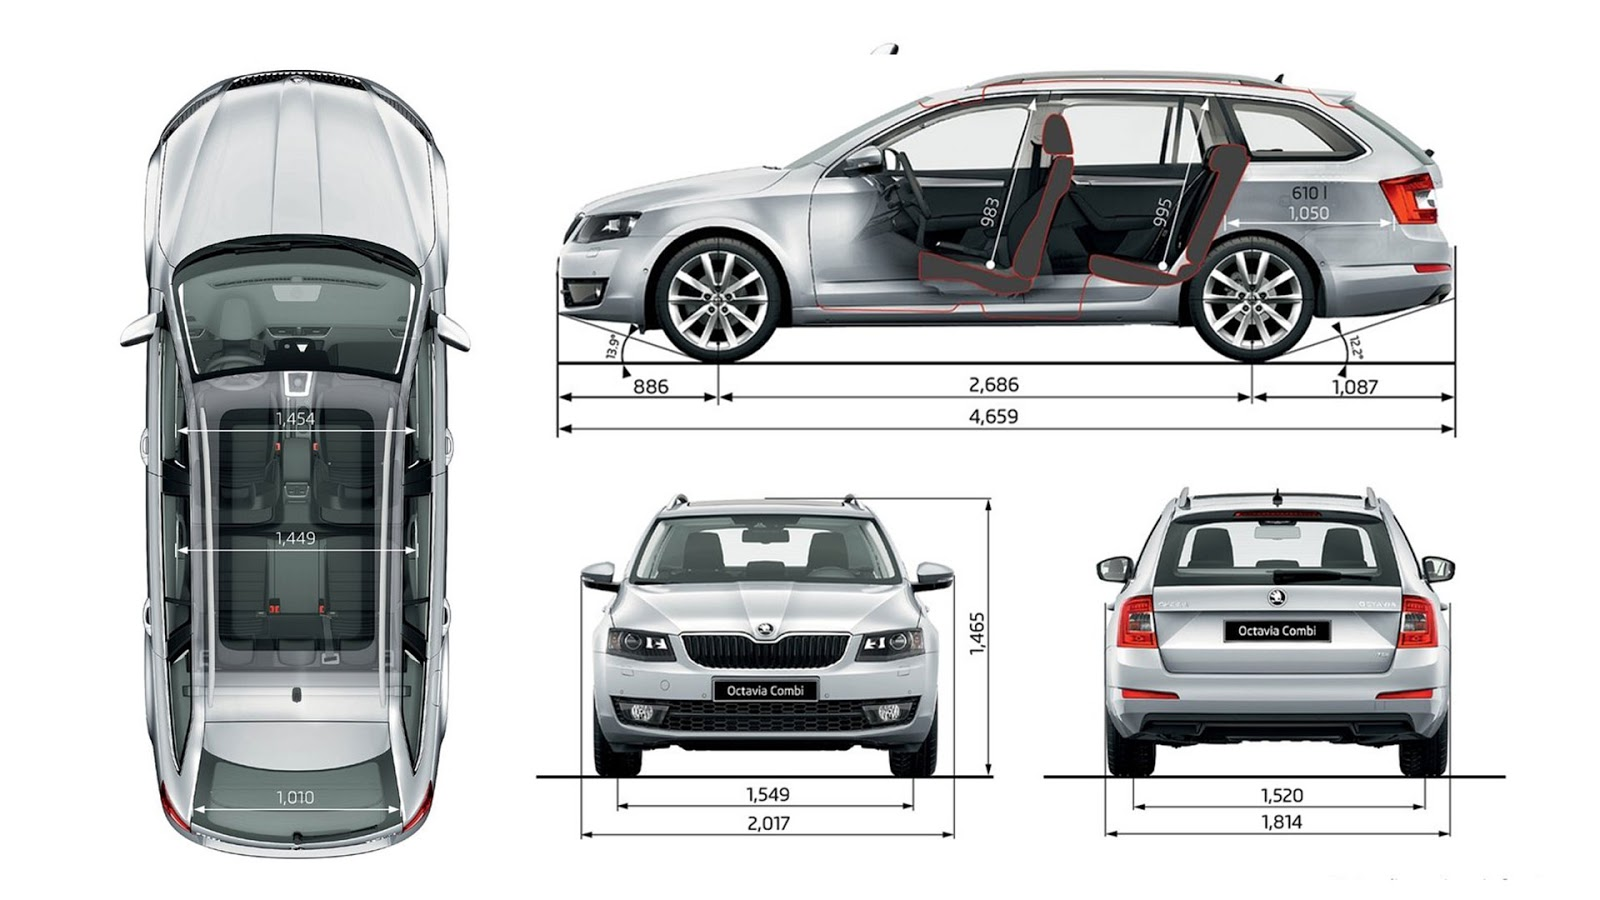 vw cars vw passat skoda octavia combi wagon blueprint drawing. Black Bedroom Furniture Sets. Home Design Ideas